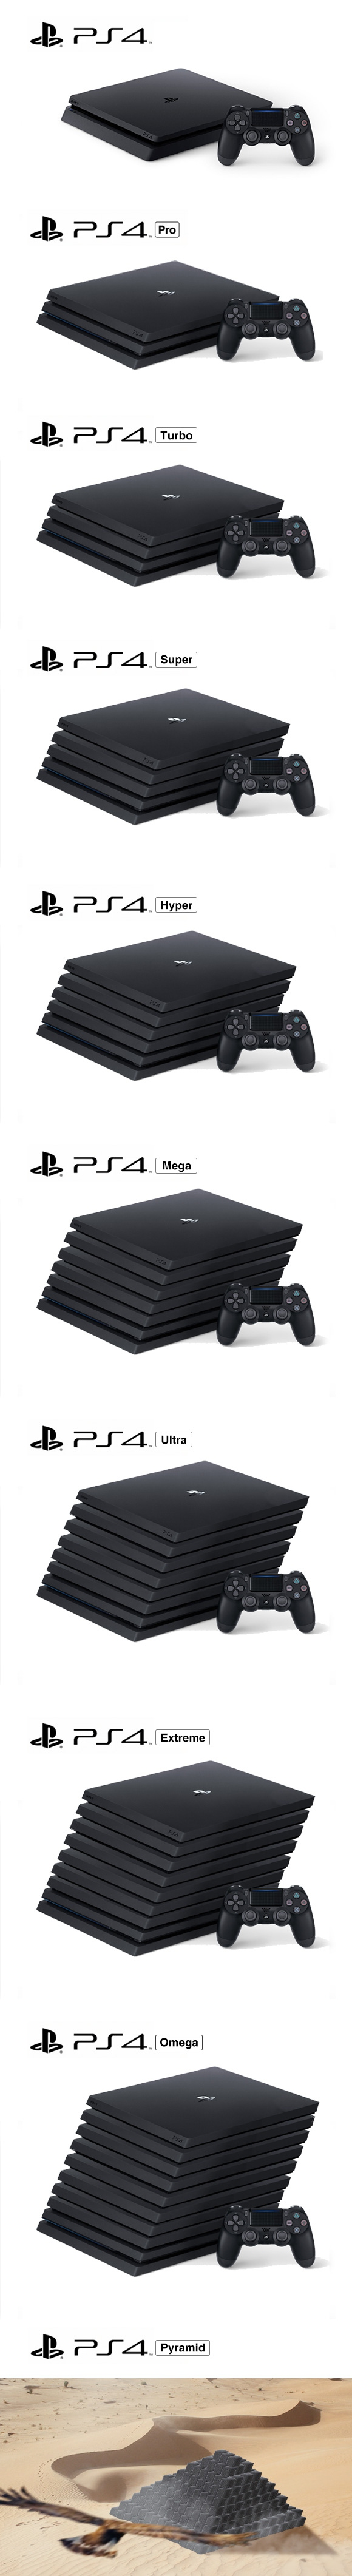 PlayStation 4 Pro and Beyond!